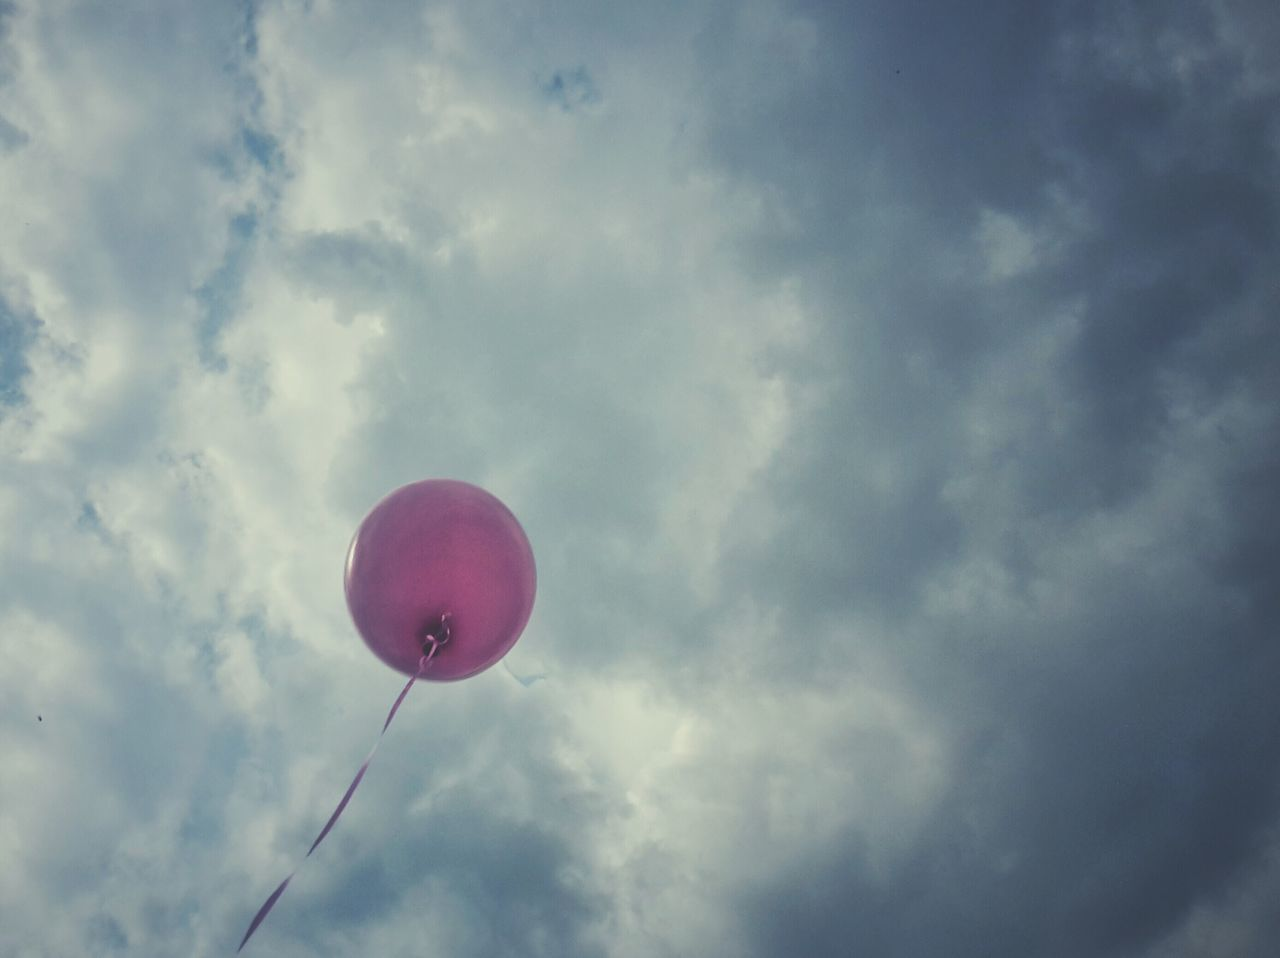 Pink pink pink... today all is pink in my town   Baloon Pink Giro D'Italia 2016 The Street Photographer - 2016 EyeEm Awards Getting Inspired Clouds And Sky Alone Castelfranco Veneto EyeEm Italy  